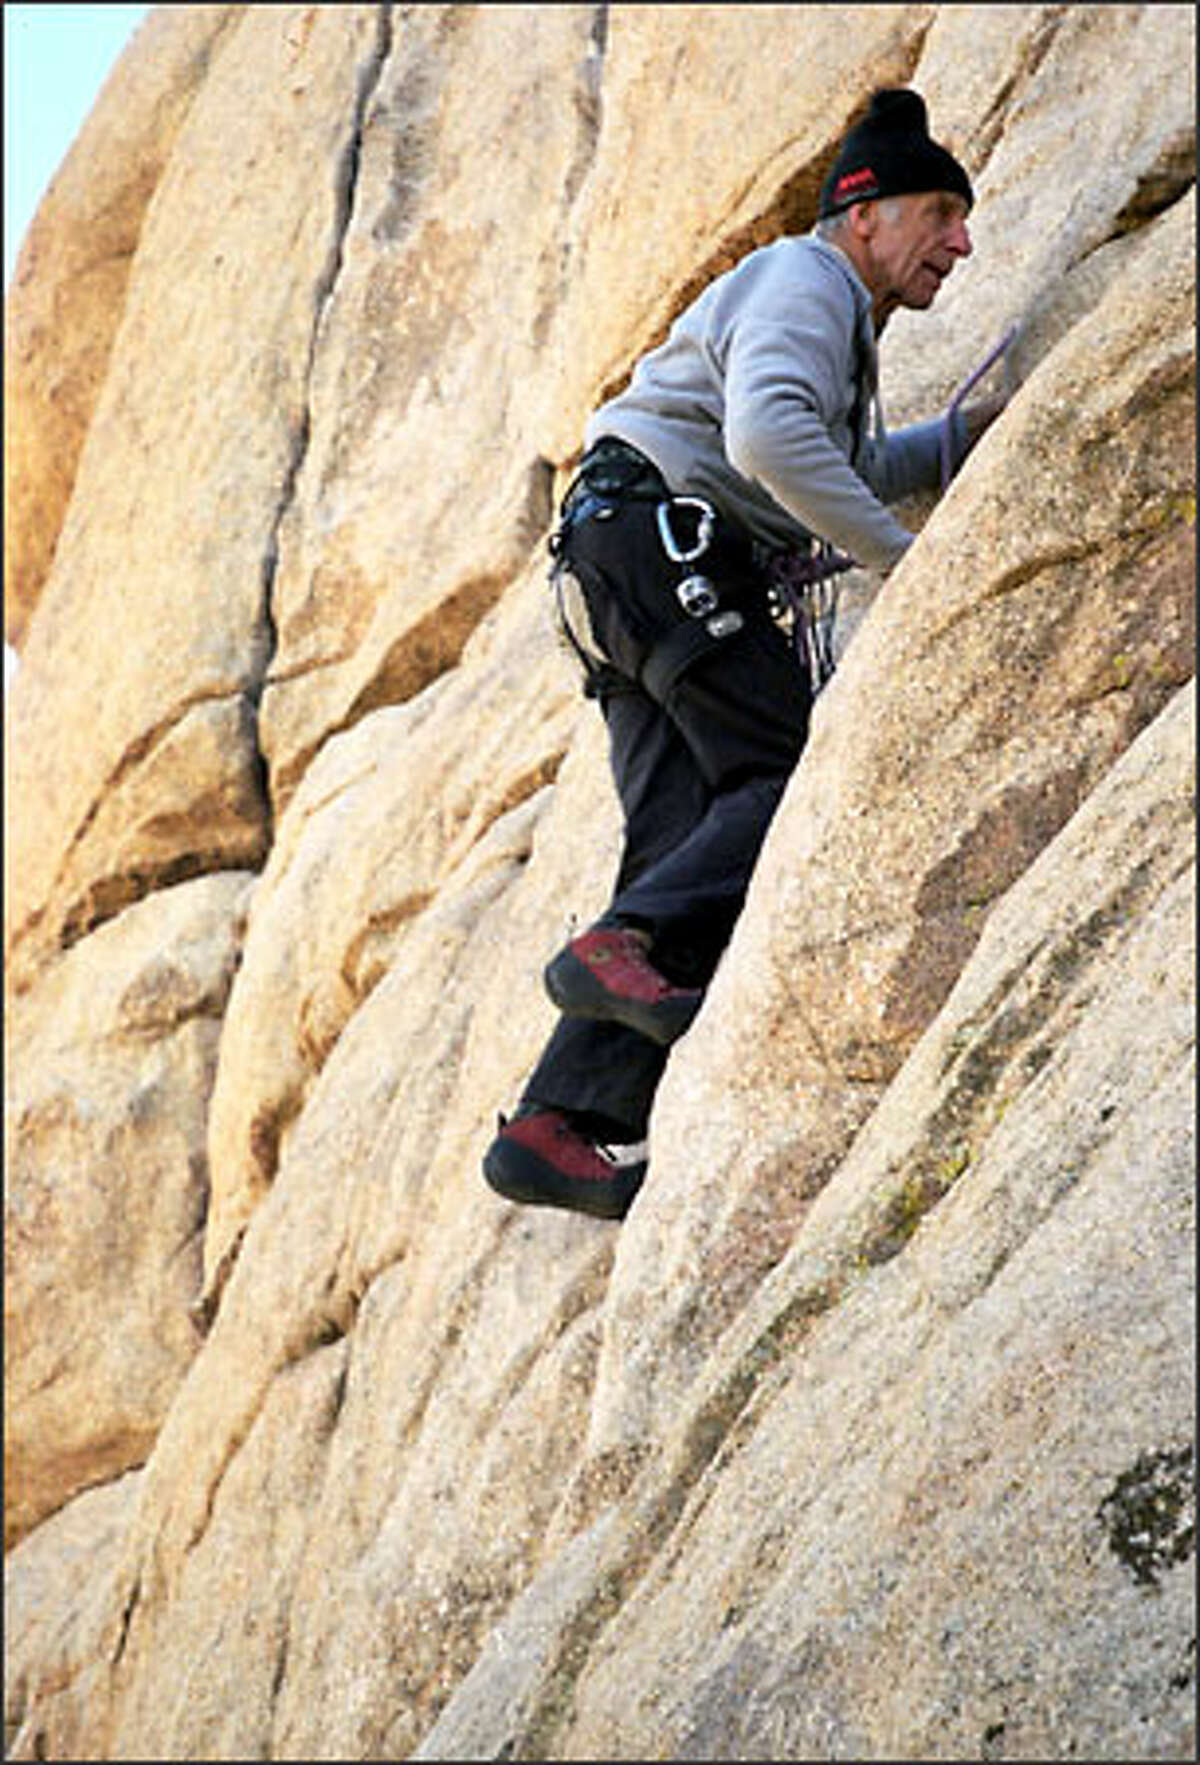 Fred Beckey ascends Sail Away, a route on Hidden Tower, a rock pinnacle in Southern California's Joshua Tree National Park, on New Year's Day. Beckey, whose 80th birthday was Jan. 14, has been climbing throughout the world since he was a teenager growing up in Seattle.